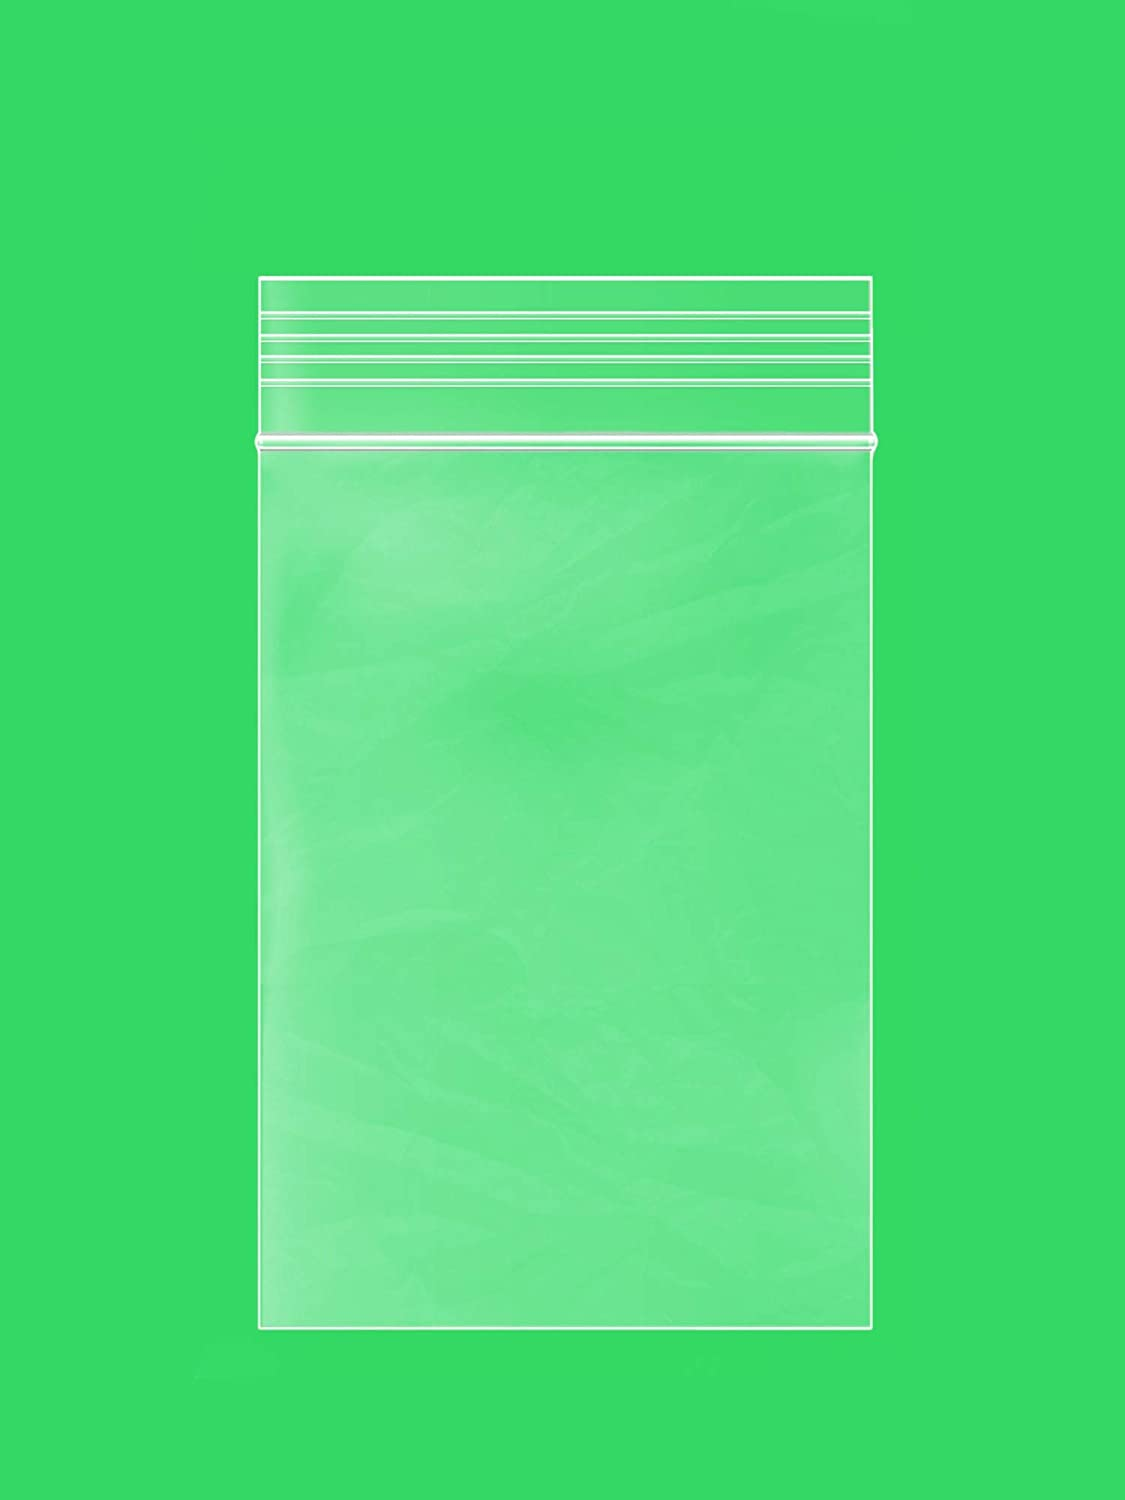 "Clear Plastic Reusable ZIPLOCK Bags - Bulk GPI Case of 1000 1.5"" x 2"" 2 mil Thick Strong & Durable Poly Baggies with Resealable Zip Top Lock for Travel, Storage, Packaging & Shipping."